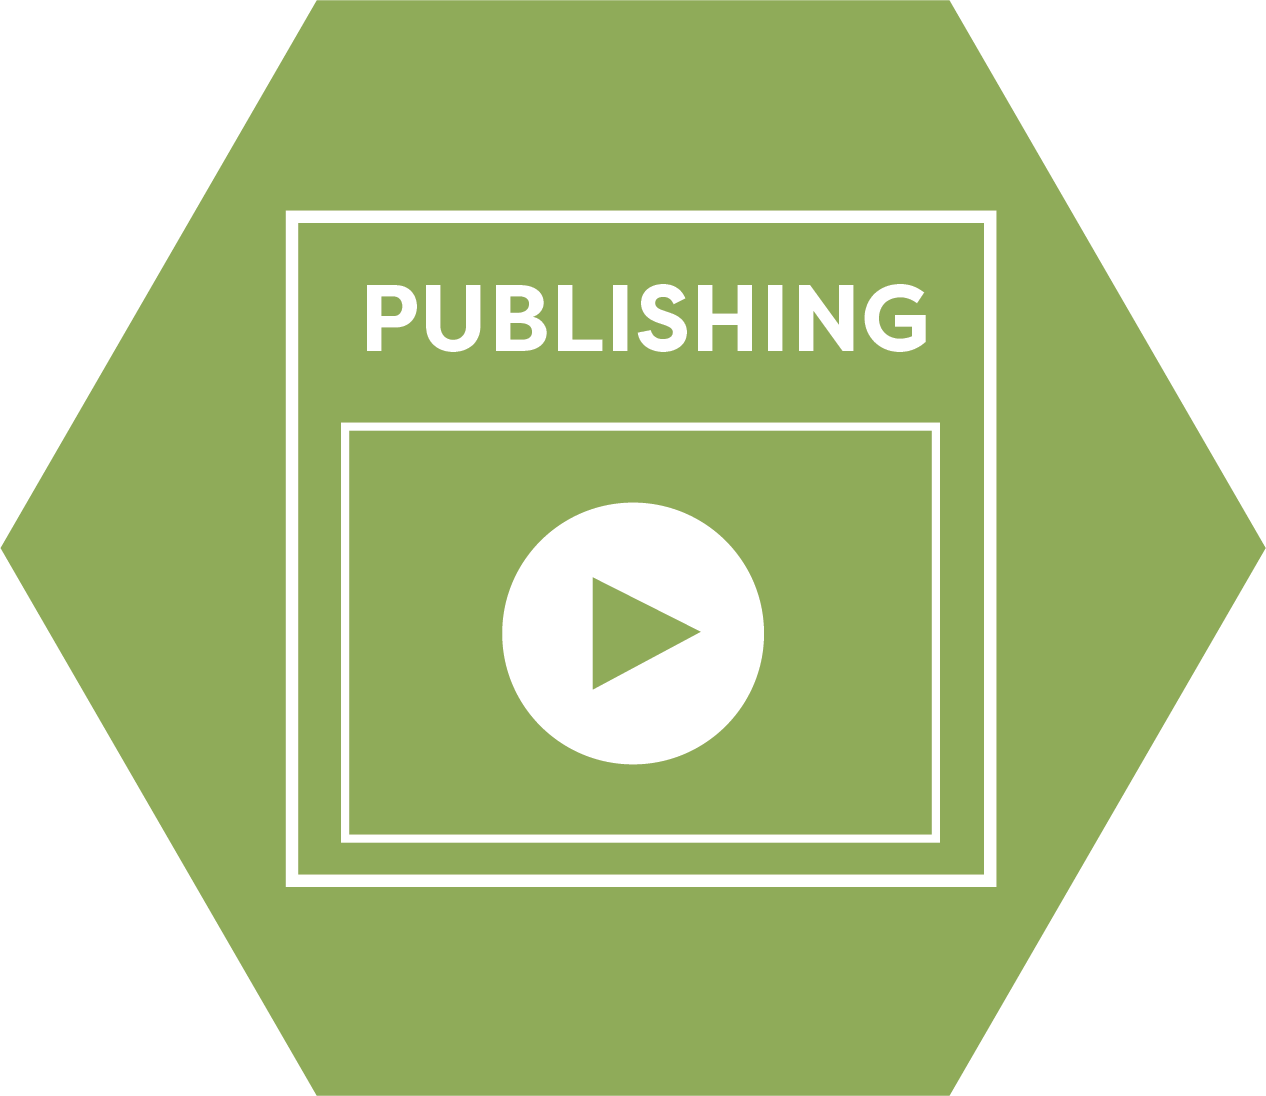 Publishing icon